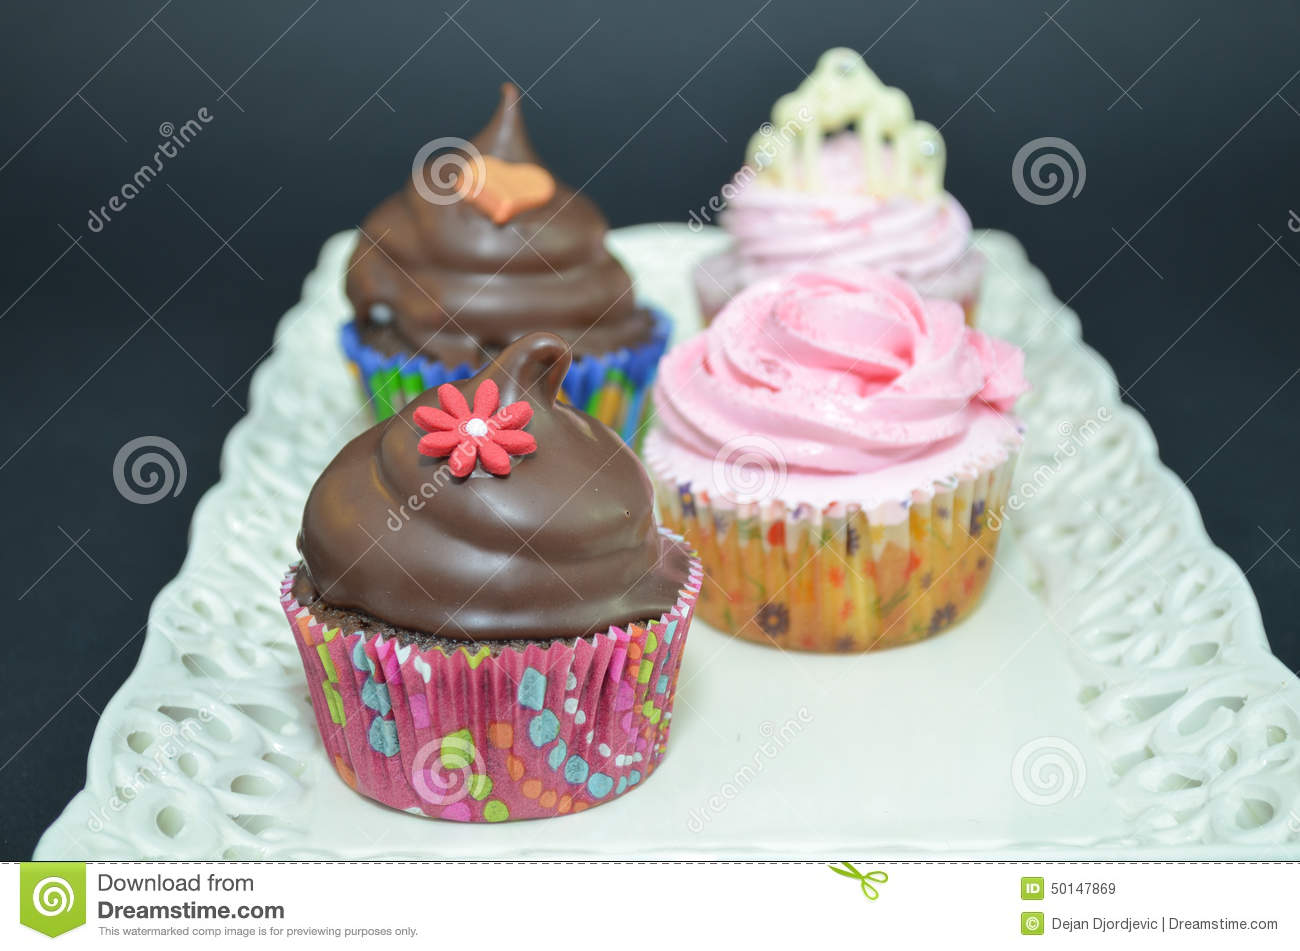 Cake Decoration With Chocolate Syrup : Cupcakes With Chocolate Sauce And Flower Decoration Stock ...